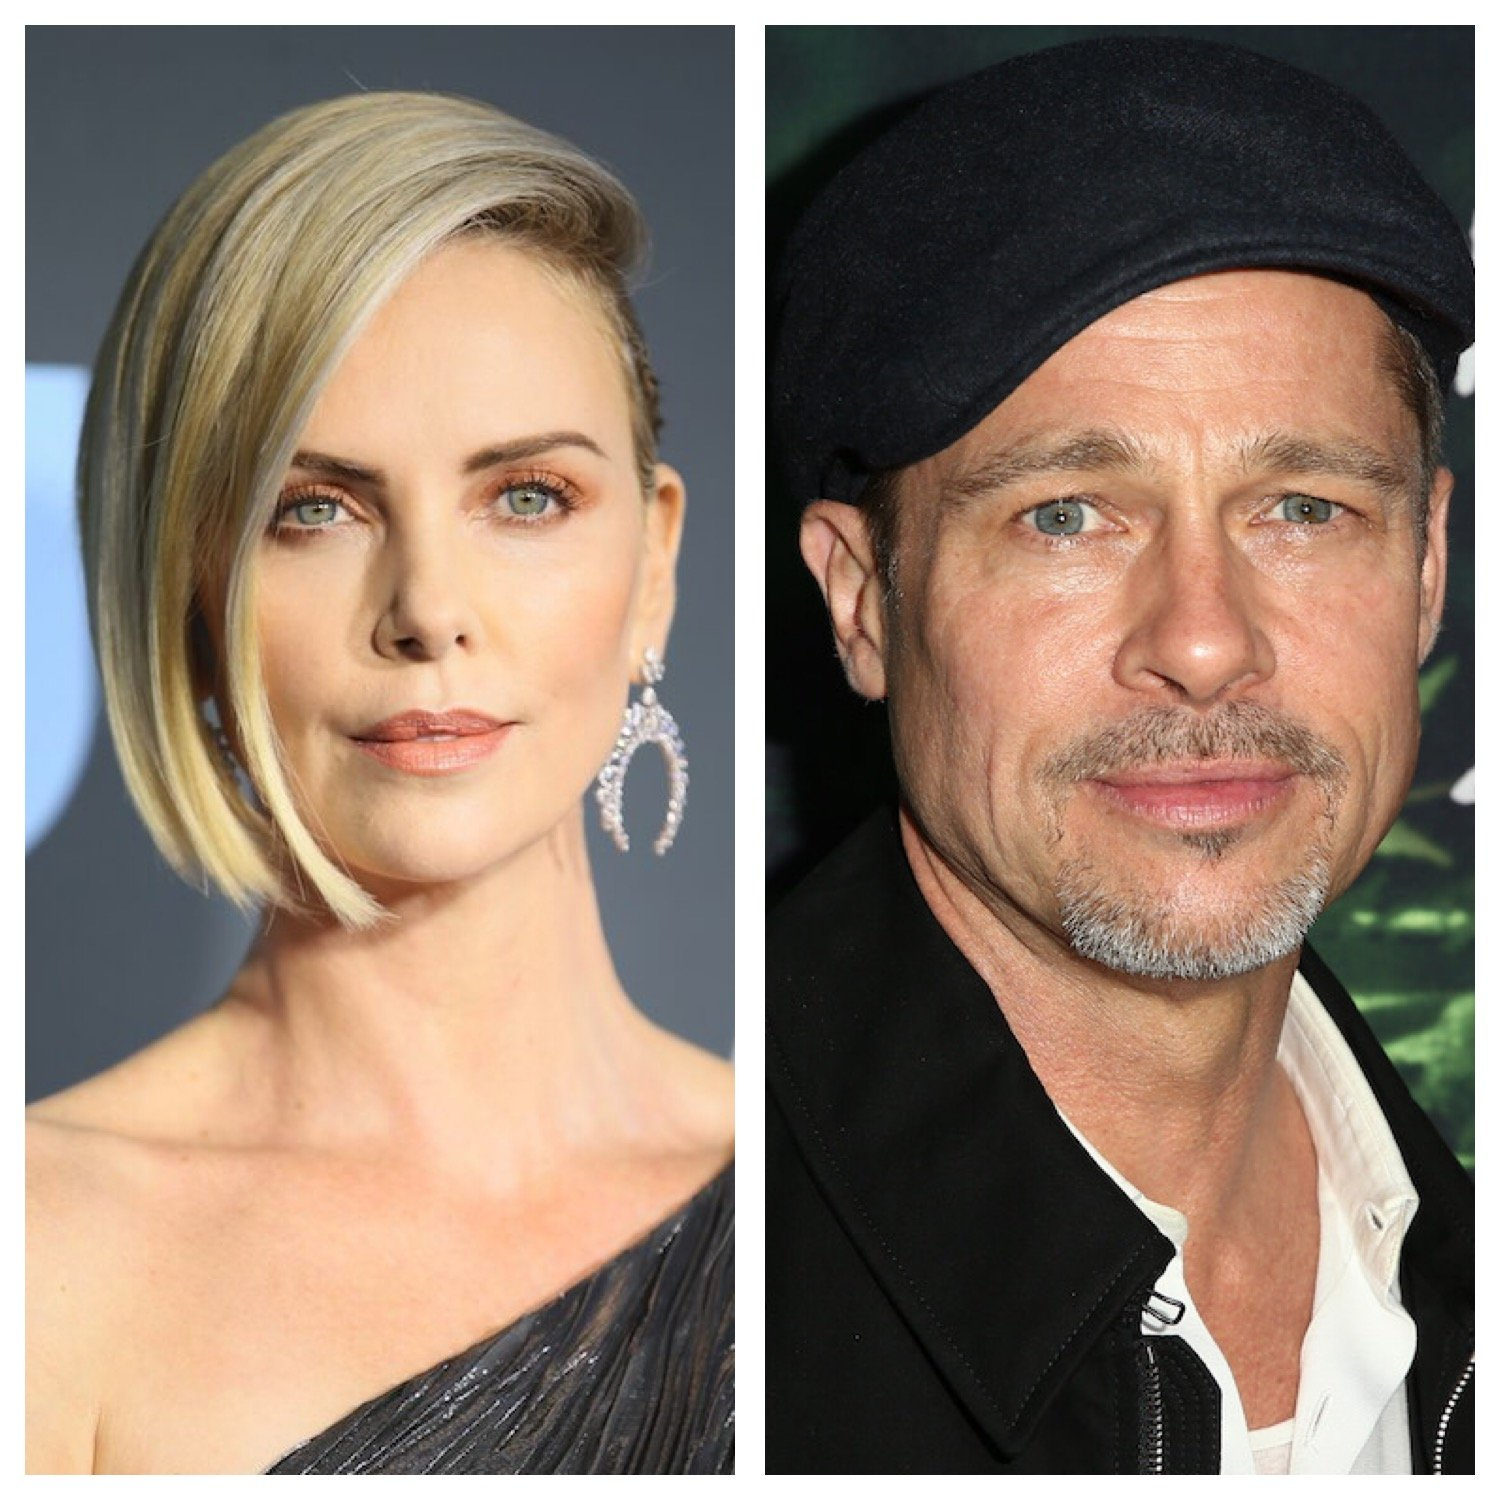 Brad Pitt and Charlize Theron are dating